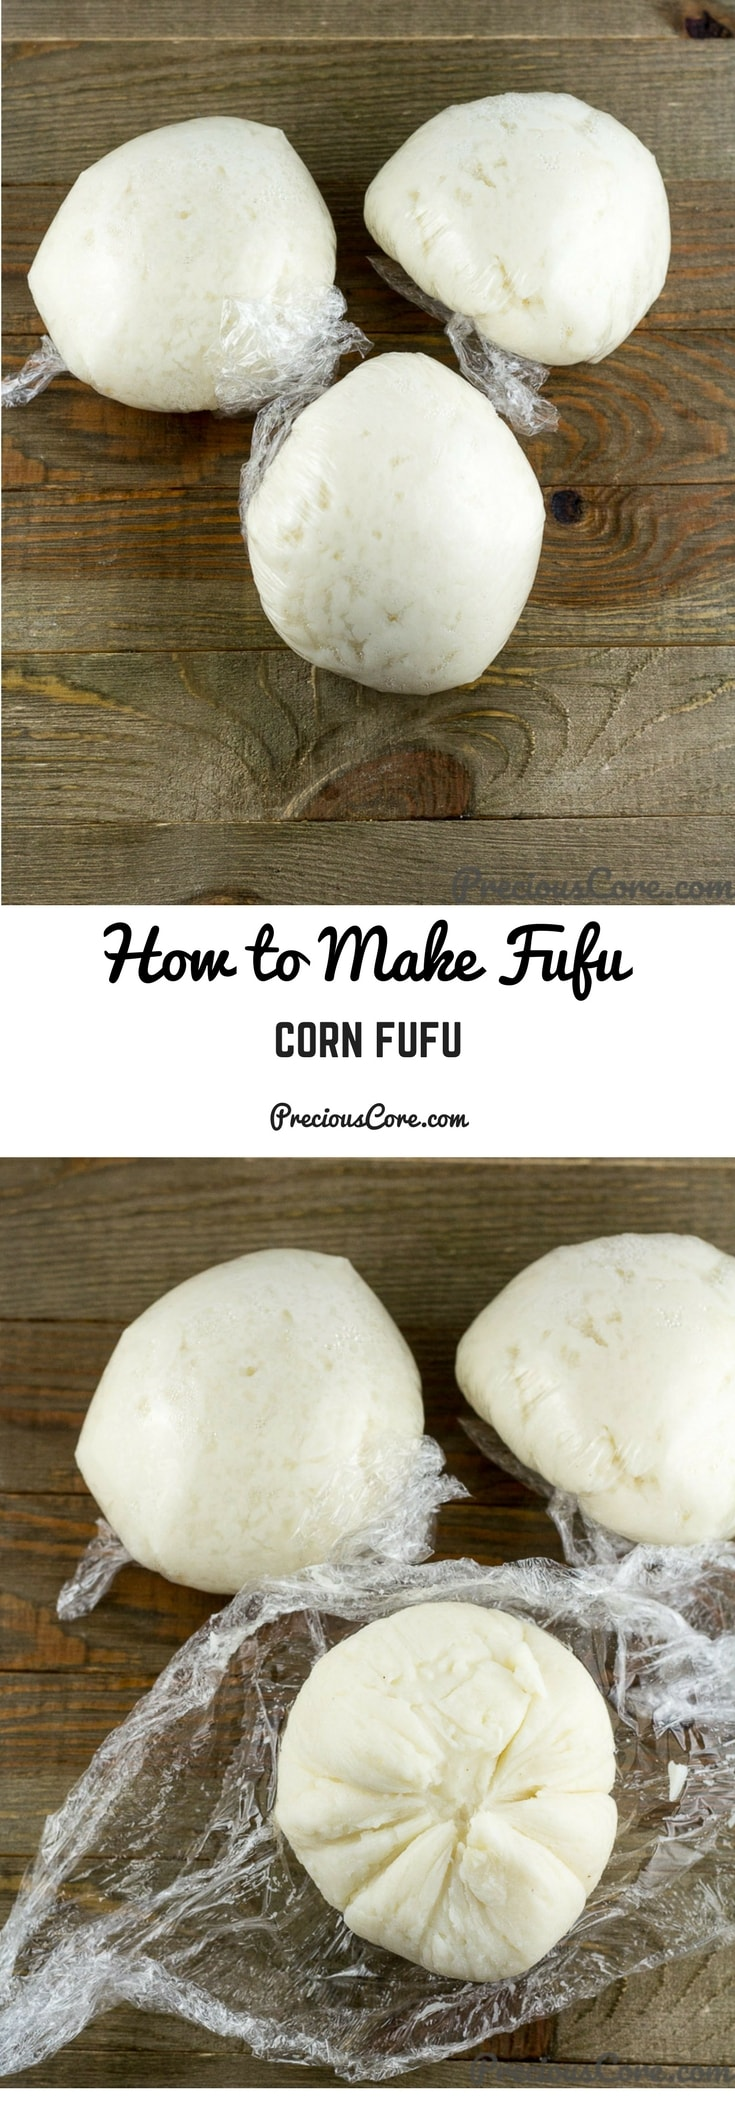 How to make fufu, specifically corn fufu. This recipe will teach even a novice how to make West Africa's favorite side dish, fufu. And it's vegan too! Get the recipe on Precious Core. #Fufu #Vegan #AfricanFood #WestAfrica